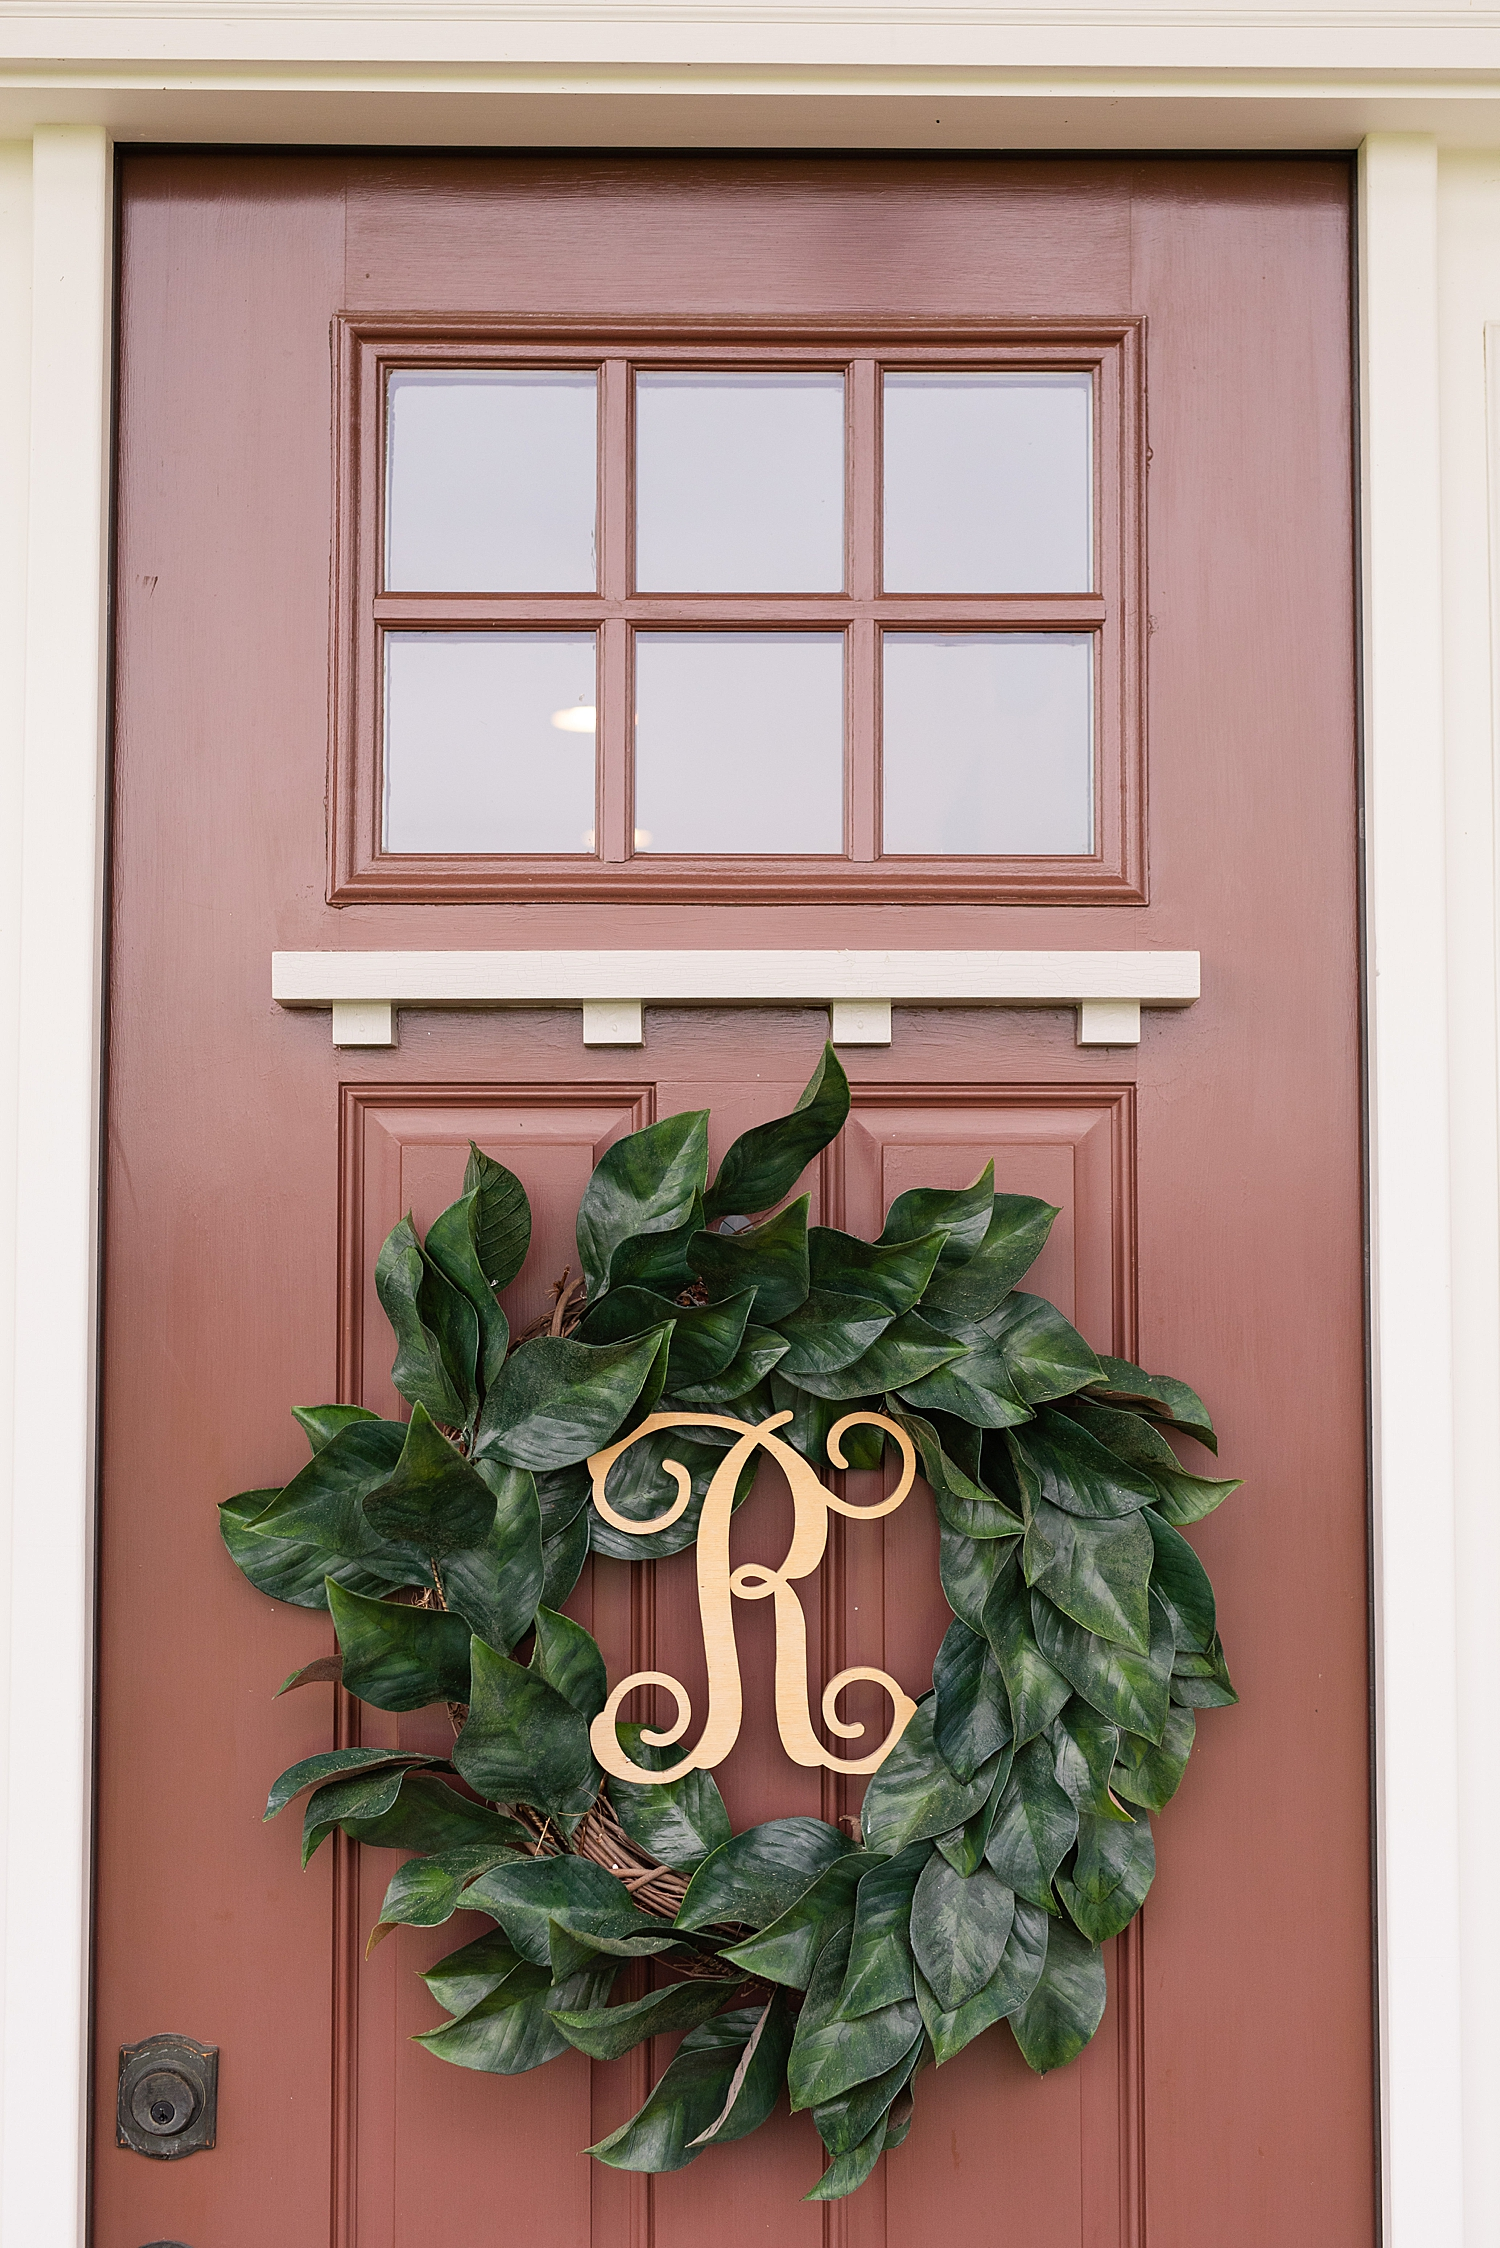 I loved their front porch! It is just so welcoming and beautiful!